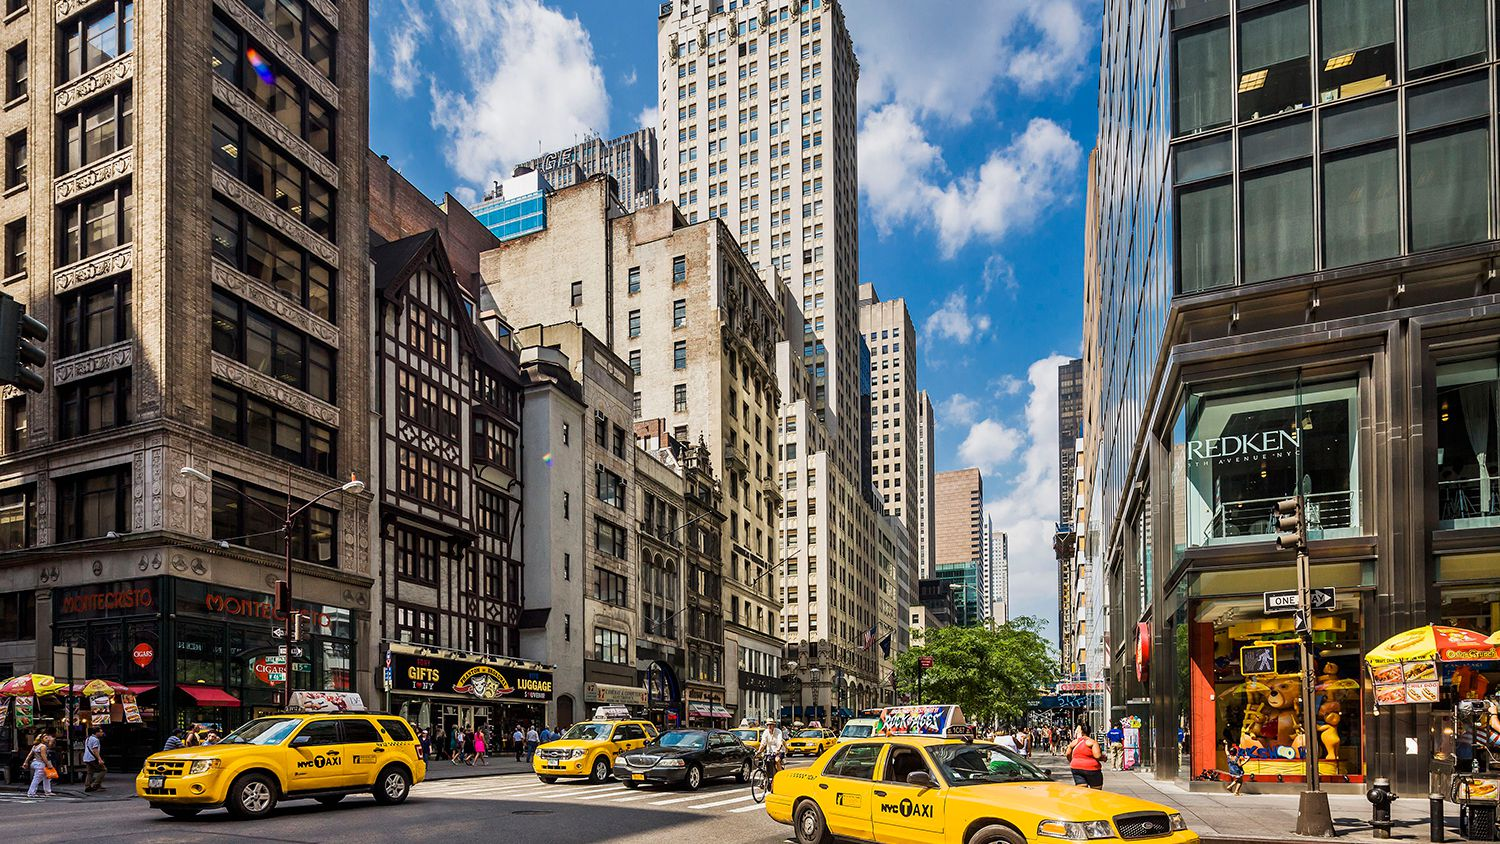 Shopping on New York's Famous 5th Avenue